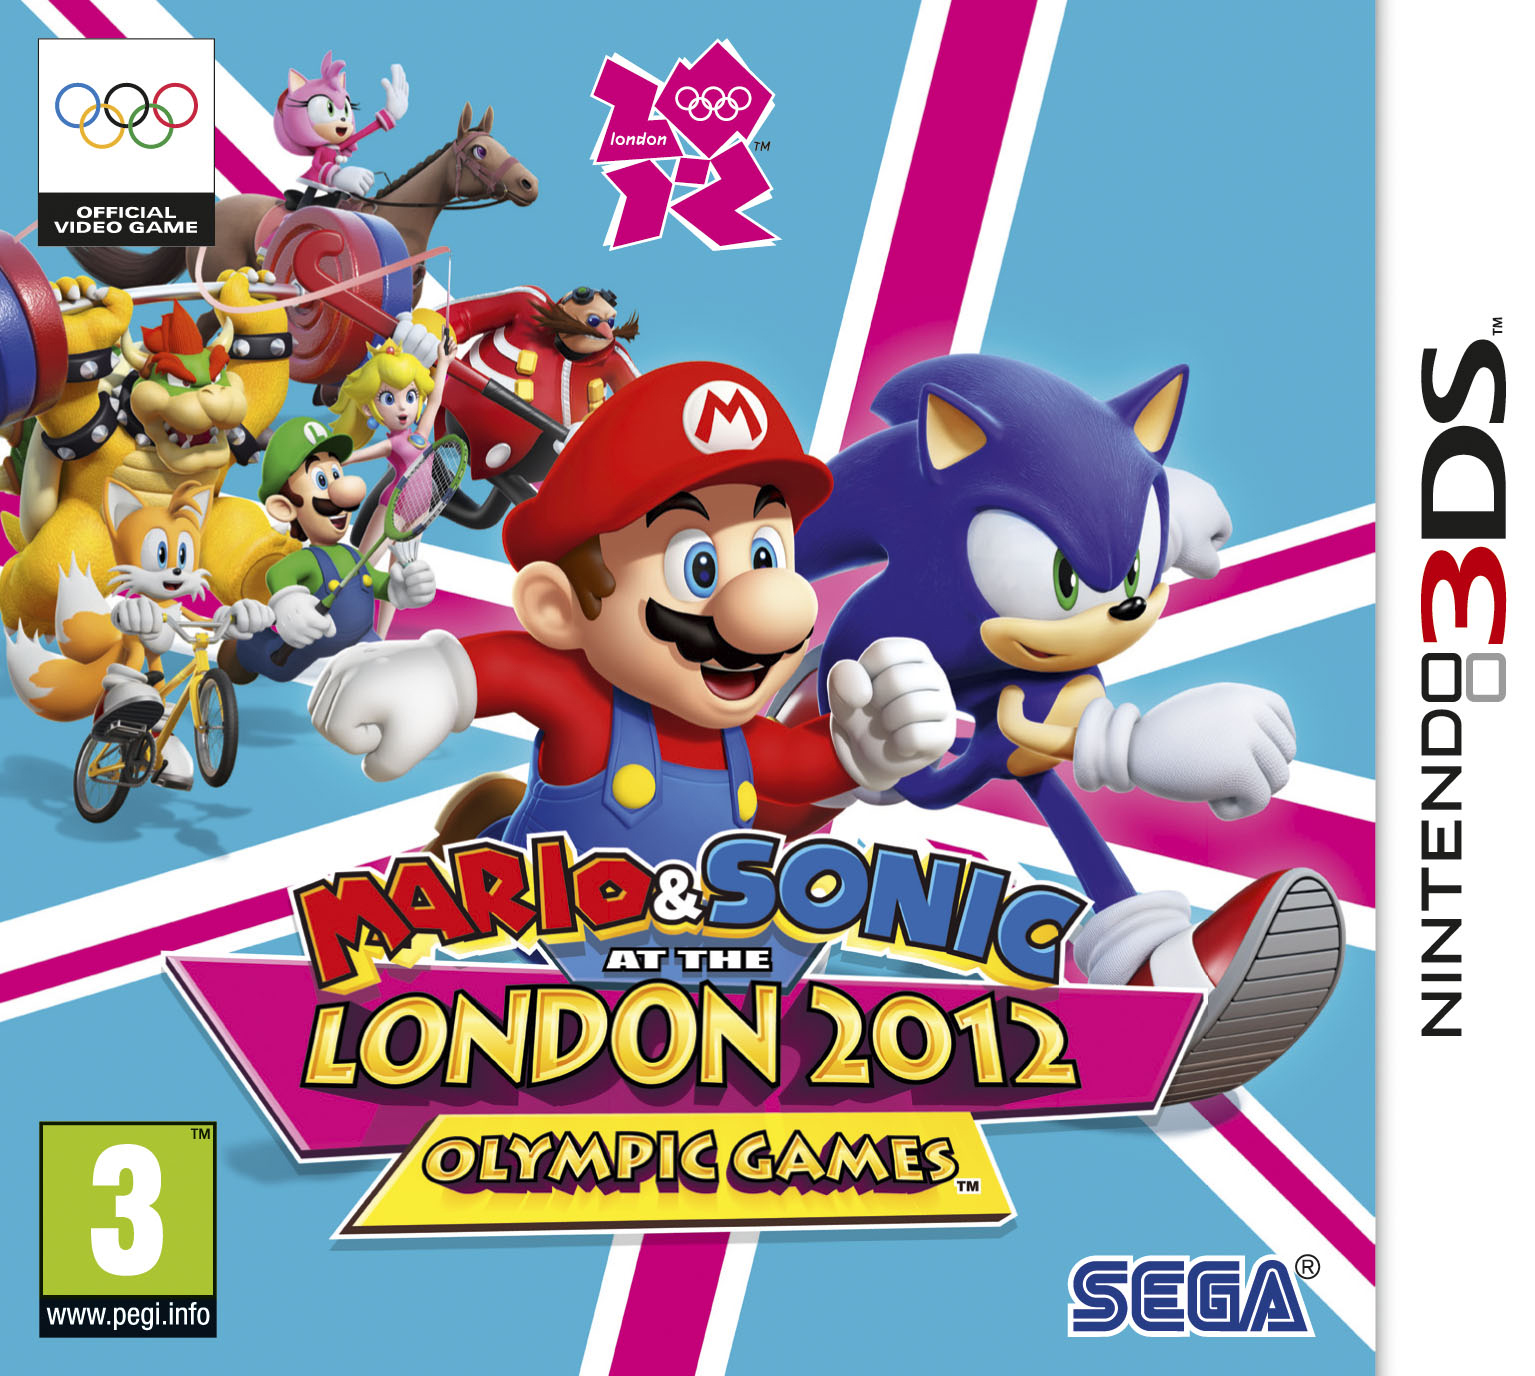 Mario And Sonic At The London 2012 Olympic games  Mario-Sonic-at-the-London-2012-Olympic-Games-3DS-UK-Box-art